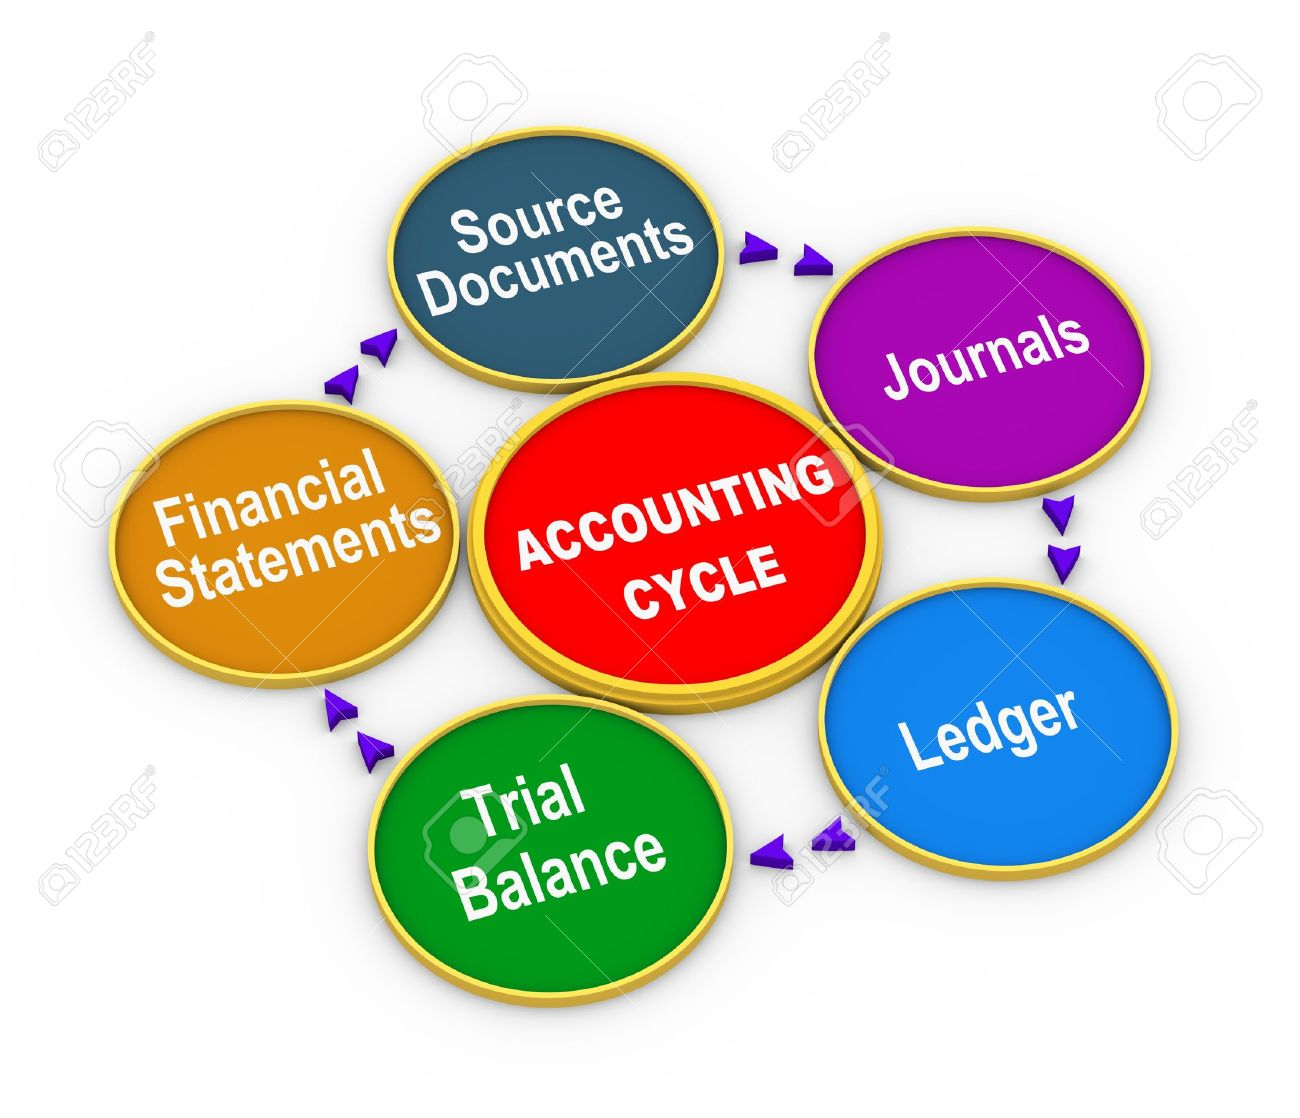 3d illustration of circular flow chart of life cycle of accounting 3d illustration of circular flow chart of life cycle of accounting process stock illustration 21082373 geenschuldenfo Images